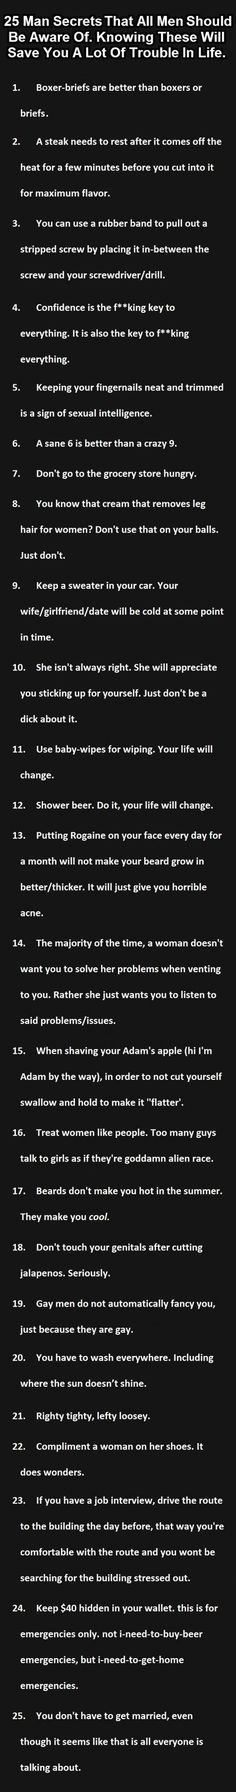 25 Man facts you should know. Many I knew, a few I needed a reminder for and some I had no clue. Pardon the language